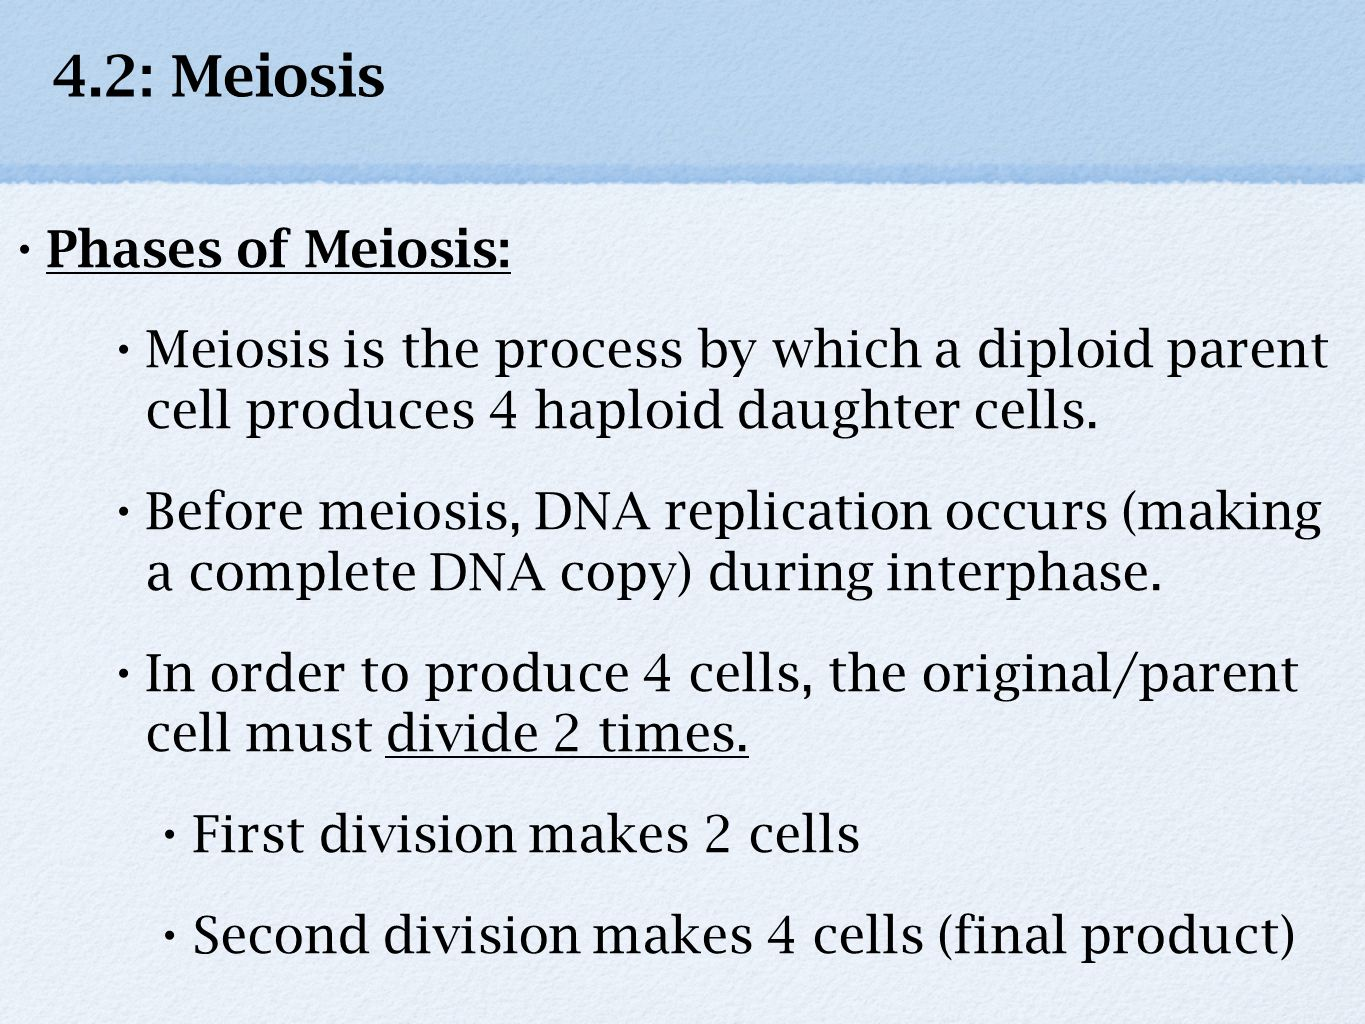 4.2: Meiosis Phases of Meiosis: